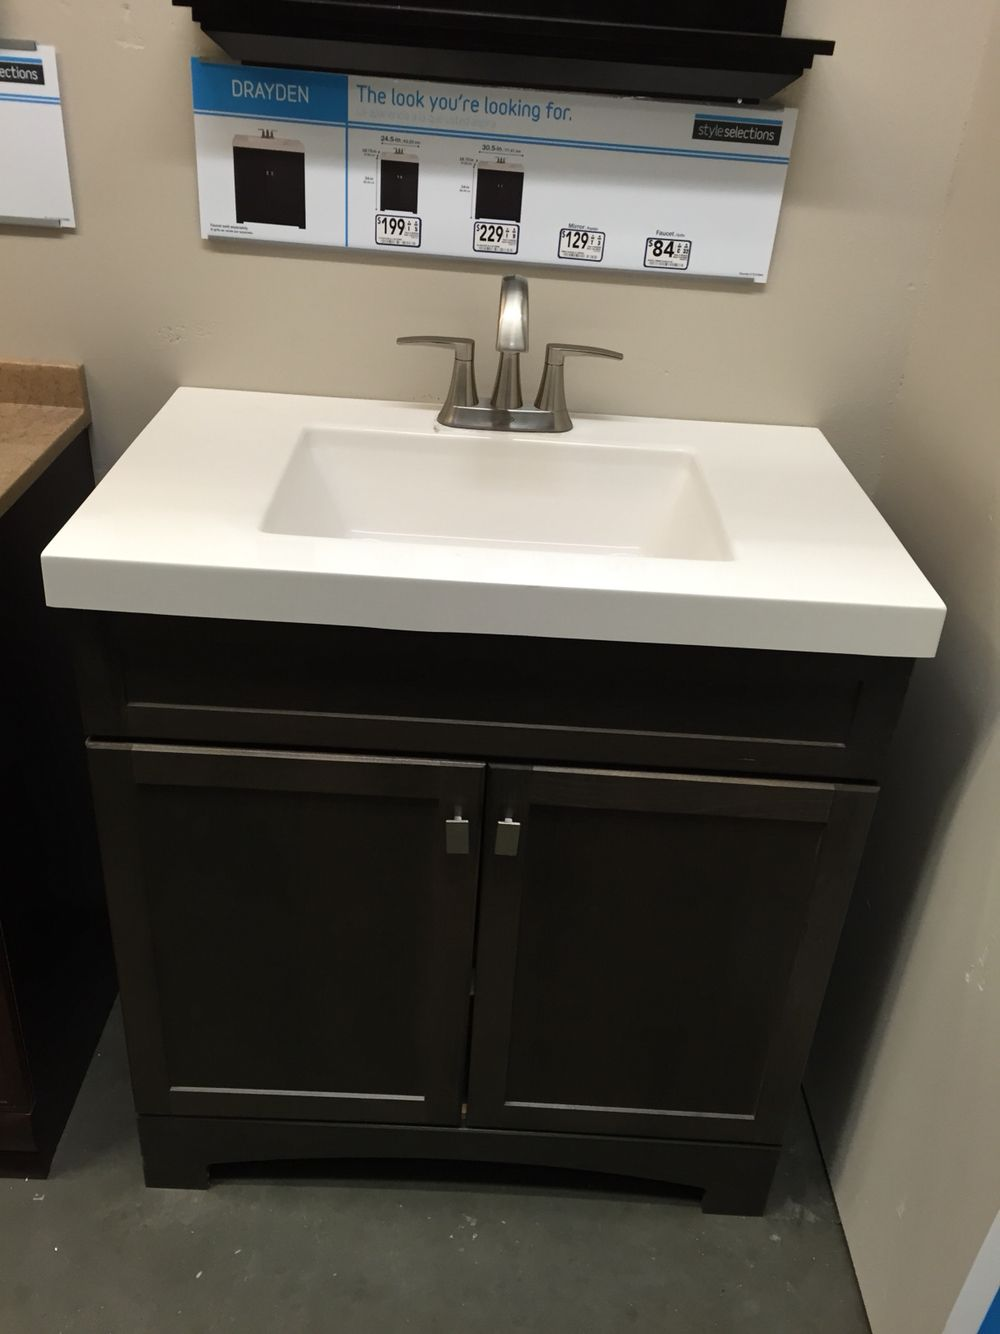 Drayden Vanity  Lowes  Bathrooms  Pinterest  Vanities Guest New Bathroom Vanities At Lowes Decorating Design